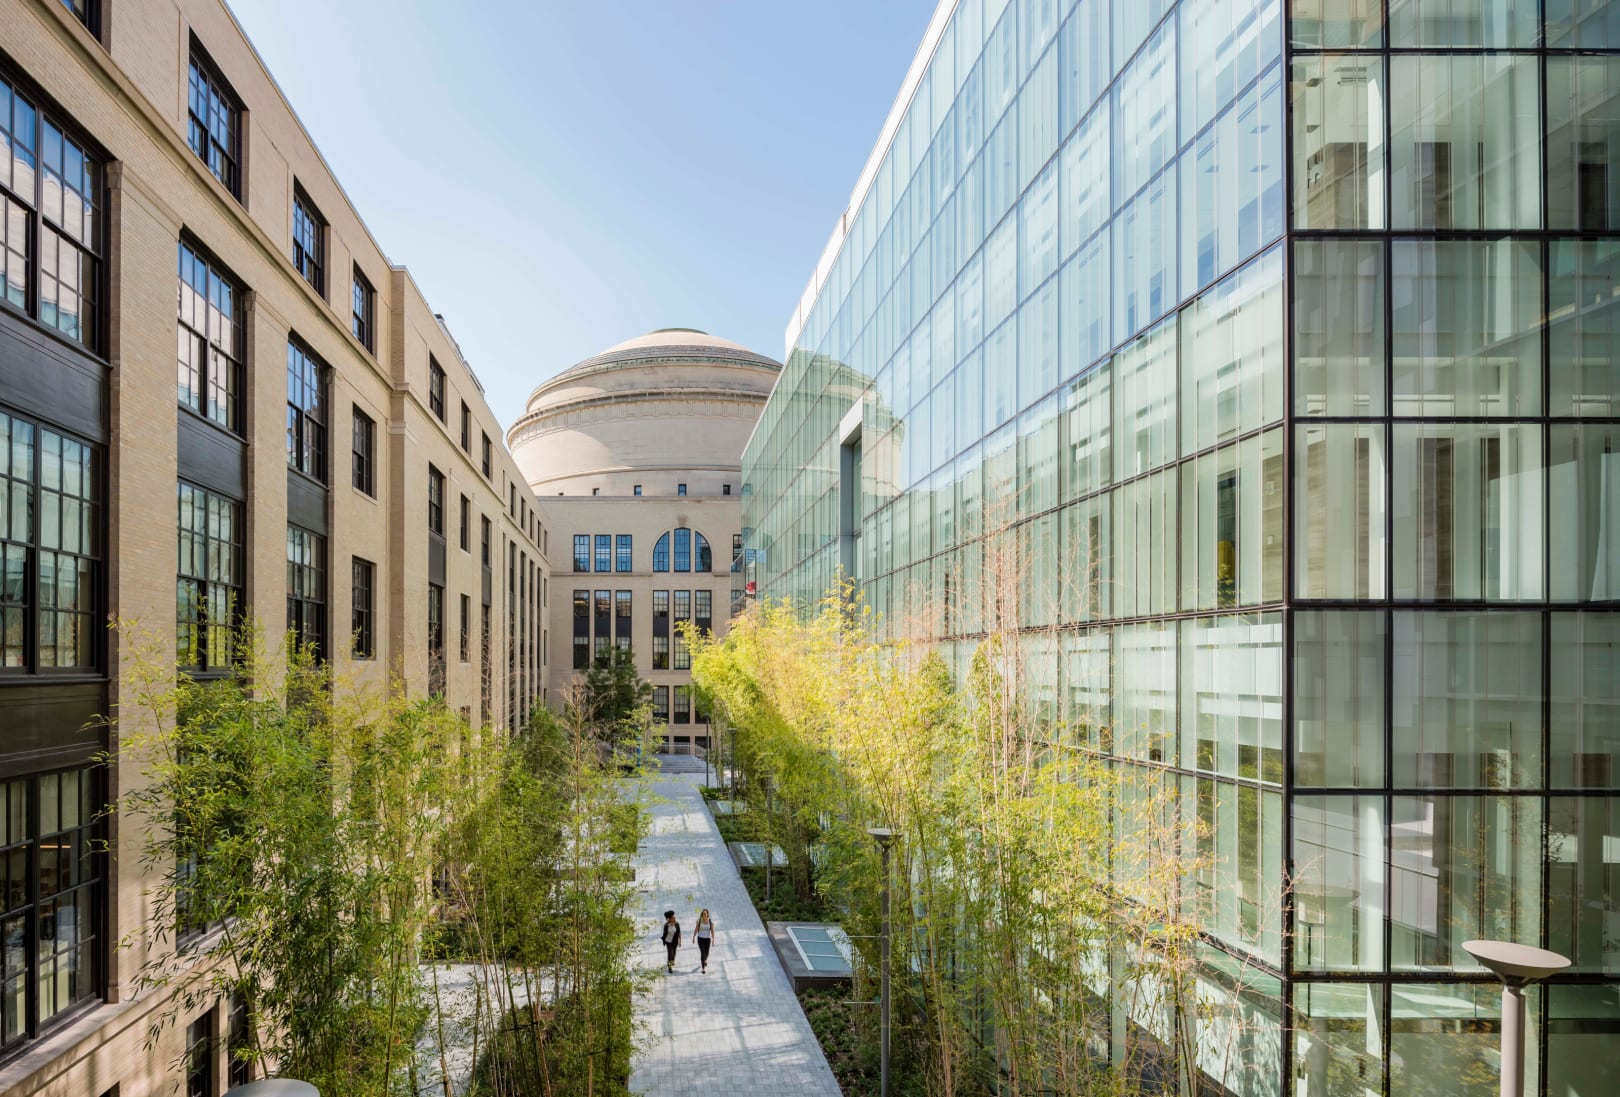 """MIT.nano forms a new campus courtyard named 'Improbability Walk' along the Main Group buildings and anchored by the Great Dome. Named in honor of one of MIT's most inspirational faculty members: the late Institute Professor Mildred """"Millie"""" Dresselhaus."""